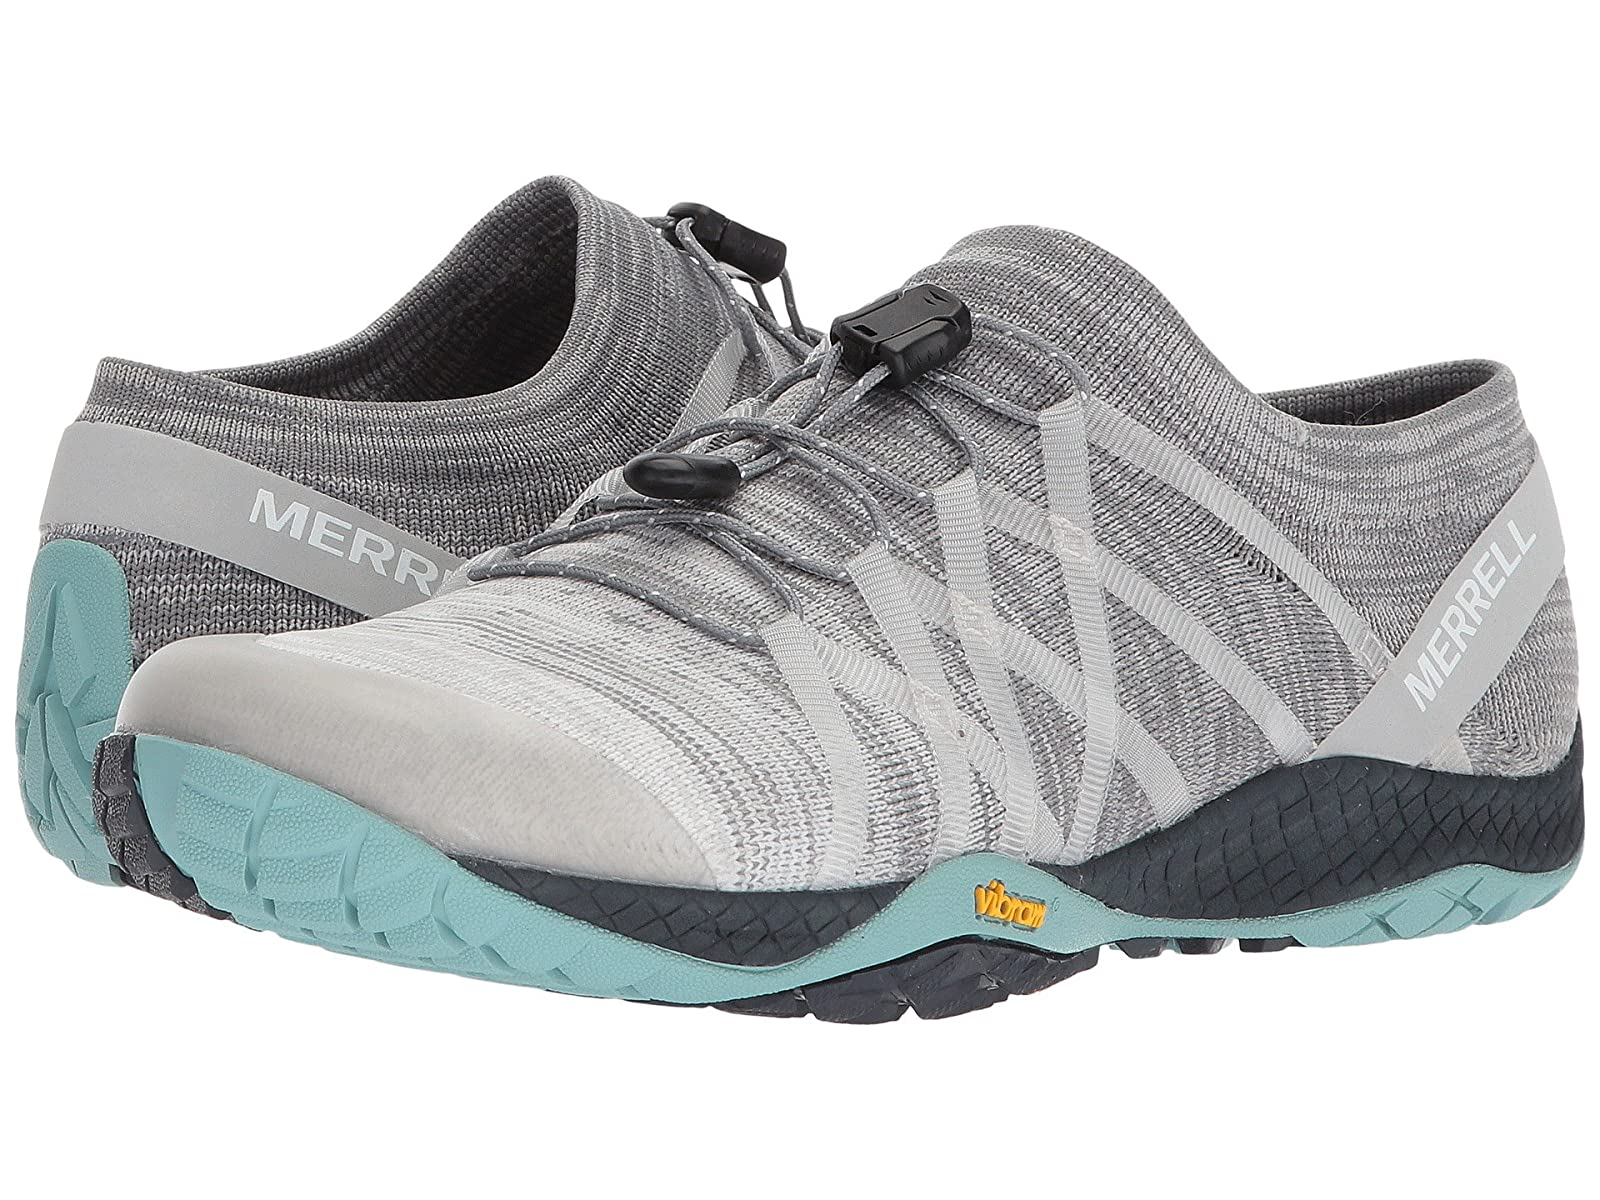 Merrell Trail Glove 4 KnitAtmospheric grades have affordable shoes